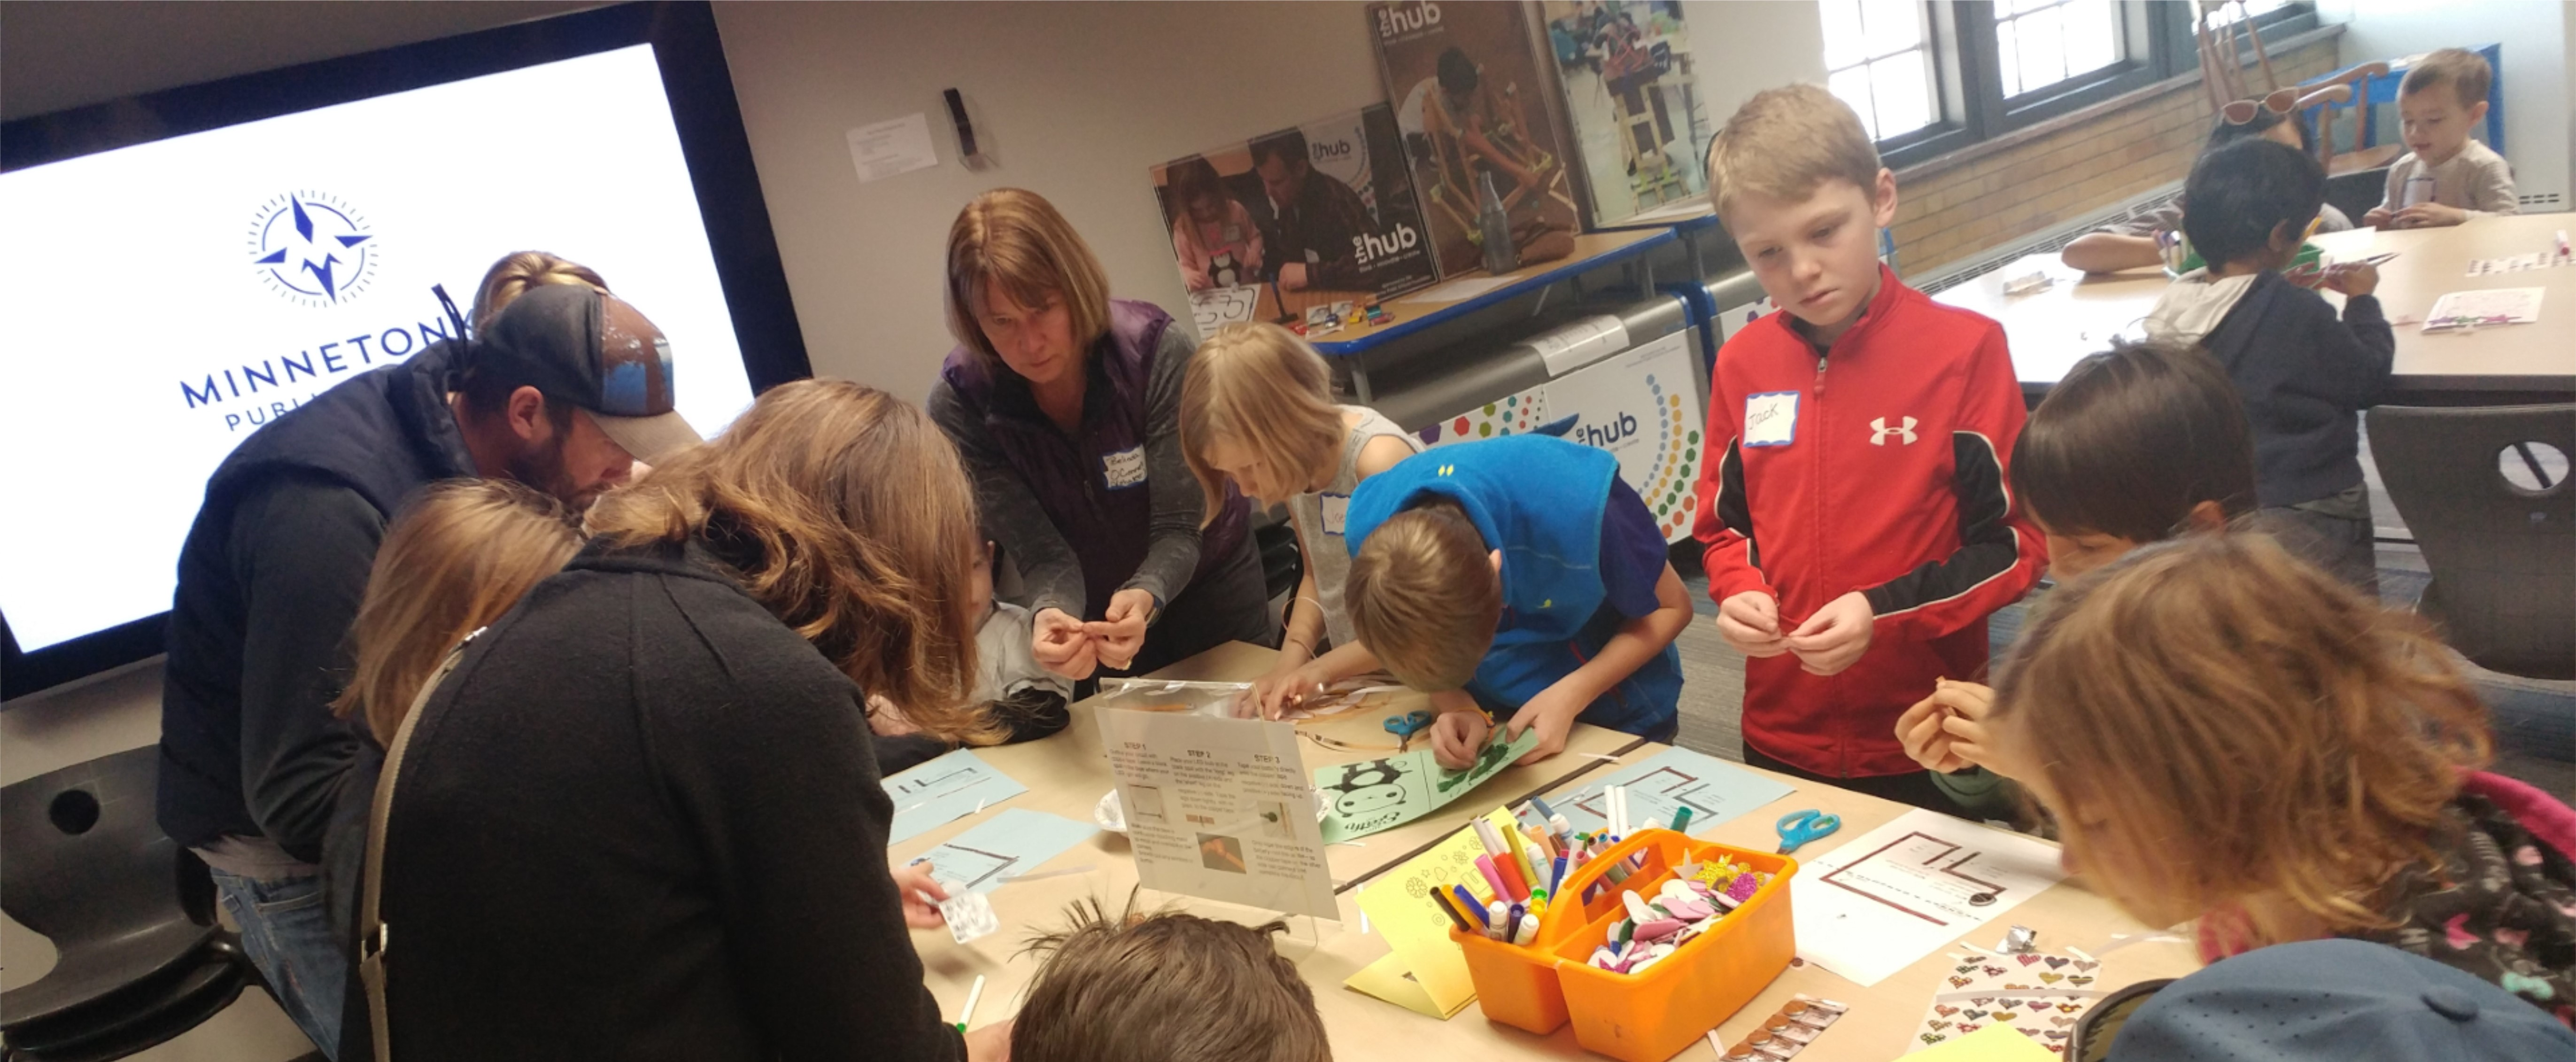 Minnetonka kids using HUB materials.